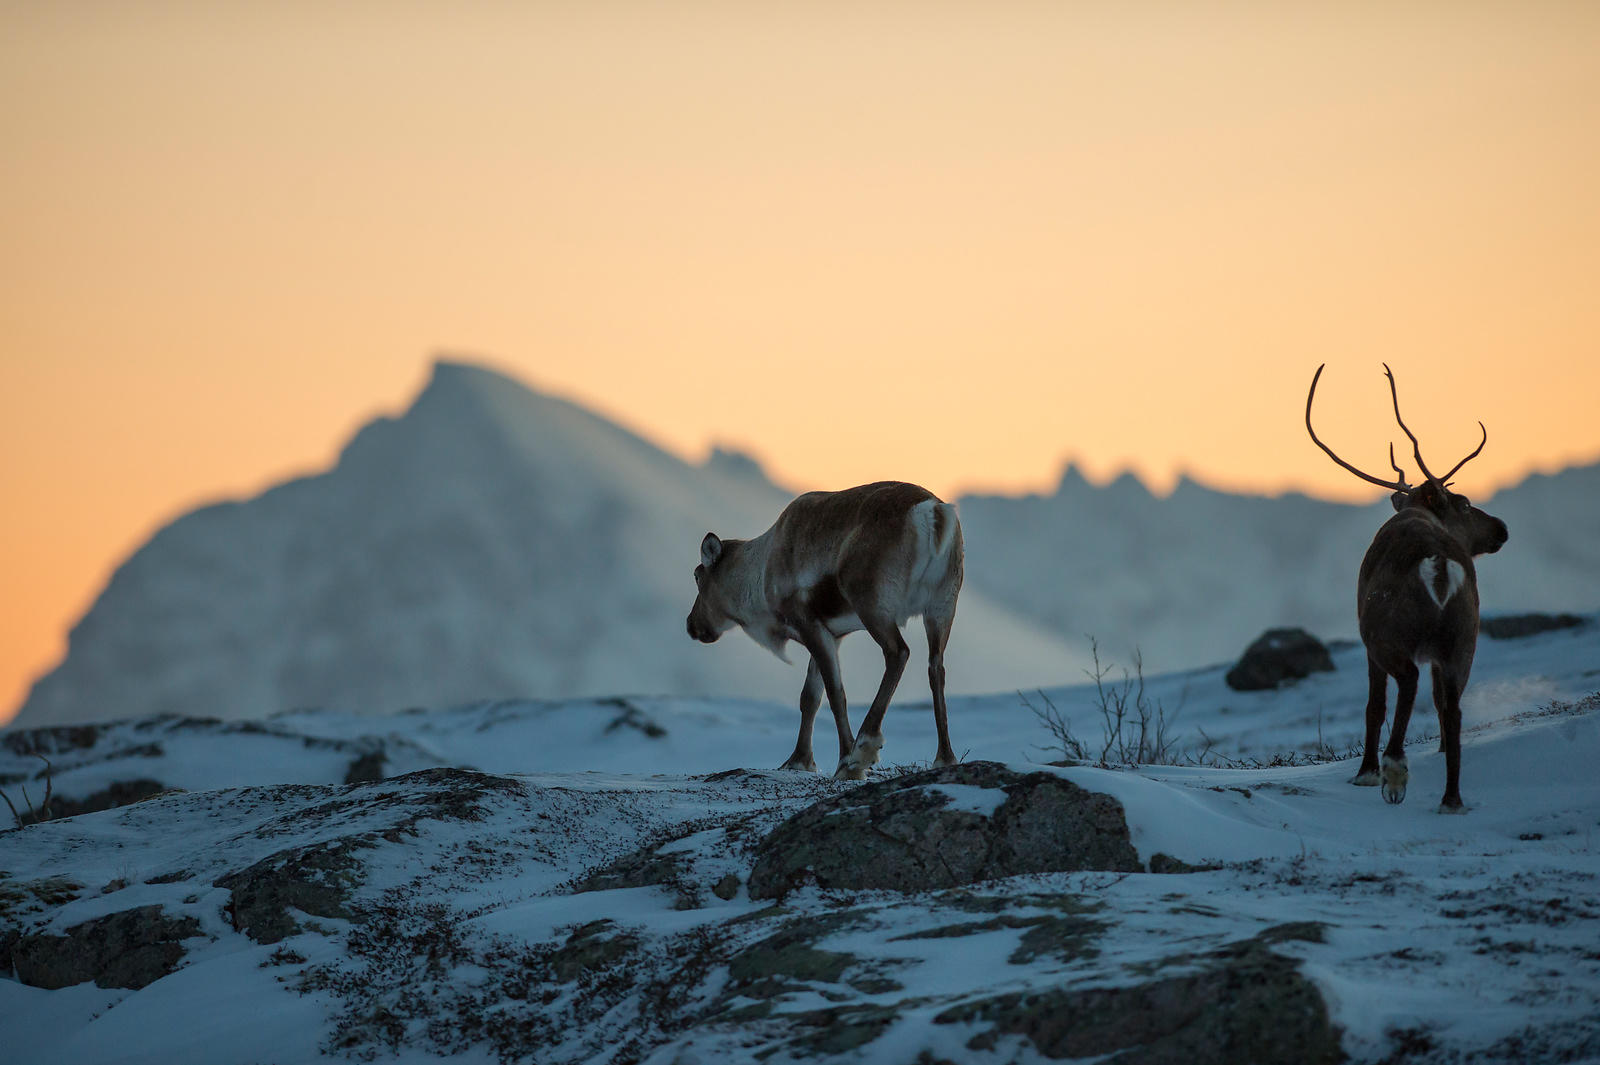 Domestic reindeer (Rangifer tarandus) at Senja, Norway